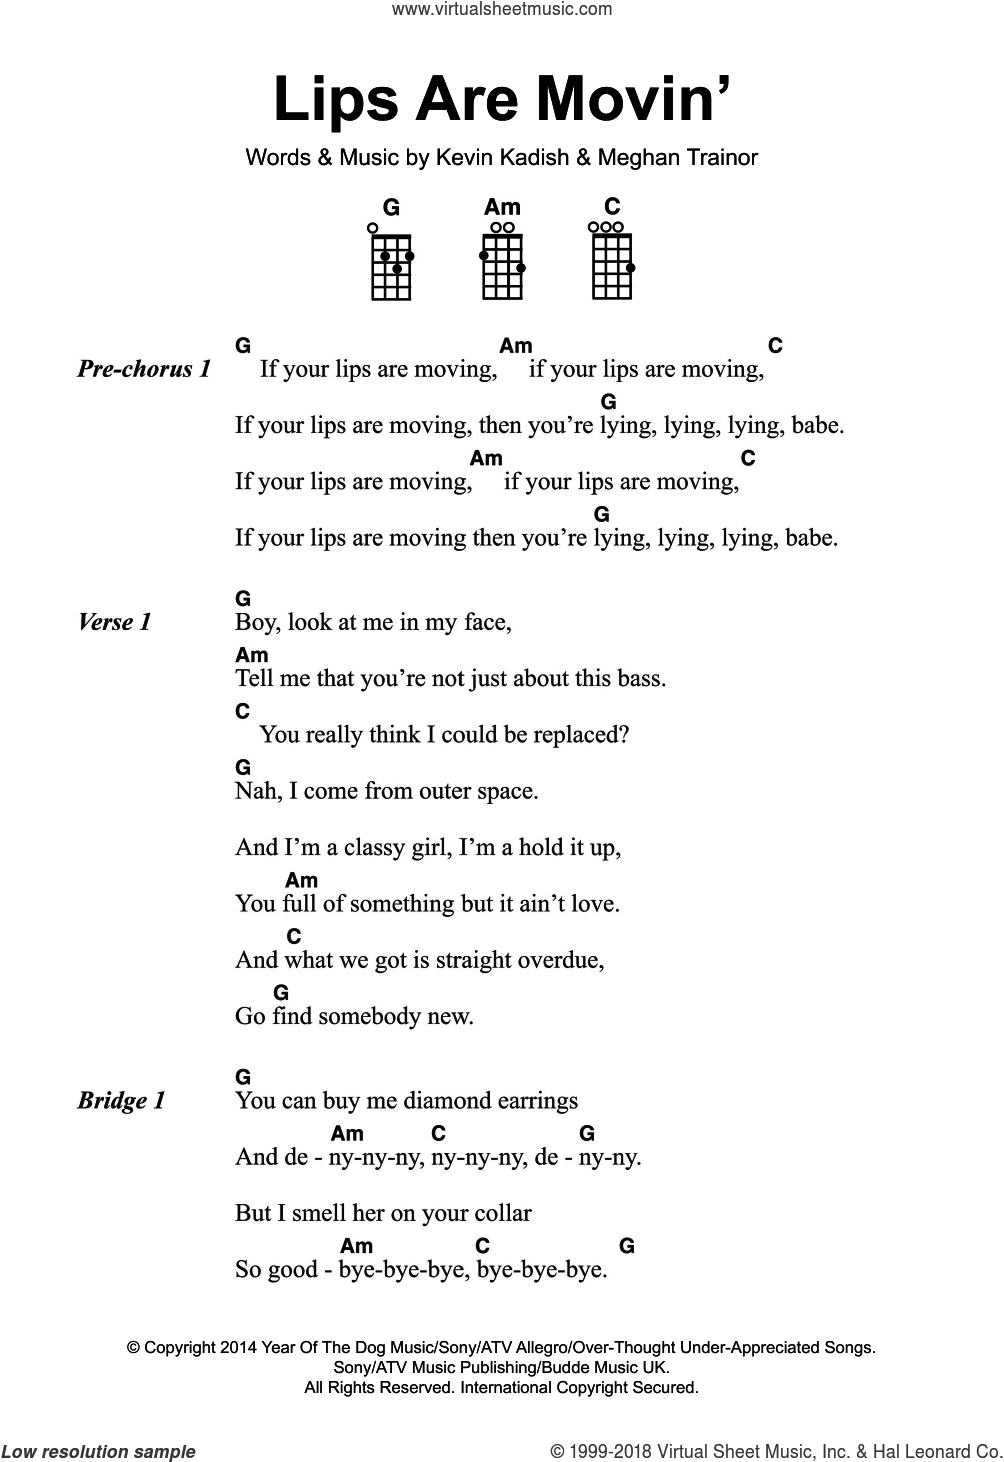 Lips Are Movin' sheet music for voice, piano or guitar by Kevin Kadish and Meghan Trainor. Score Image Preview.